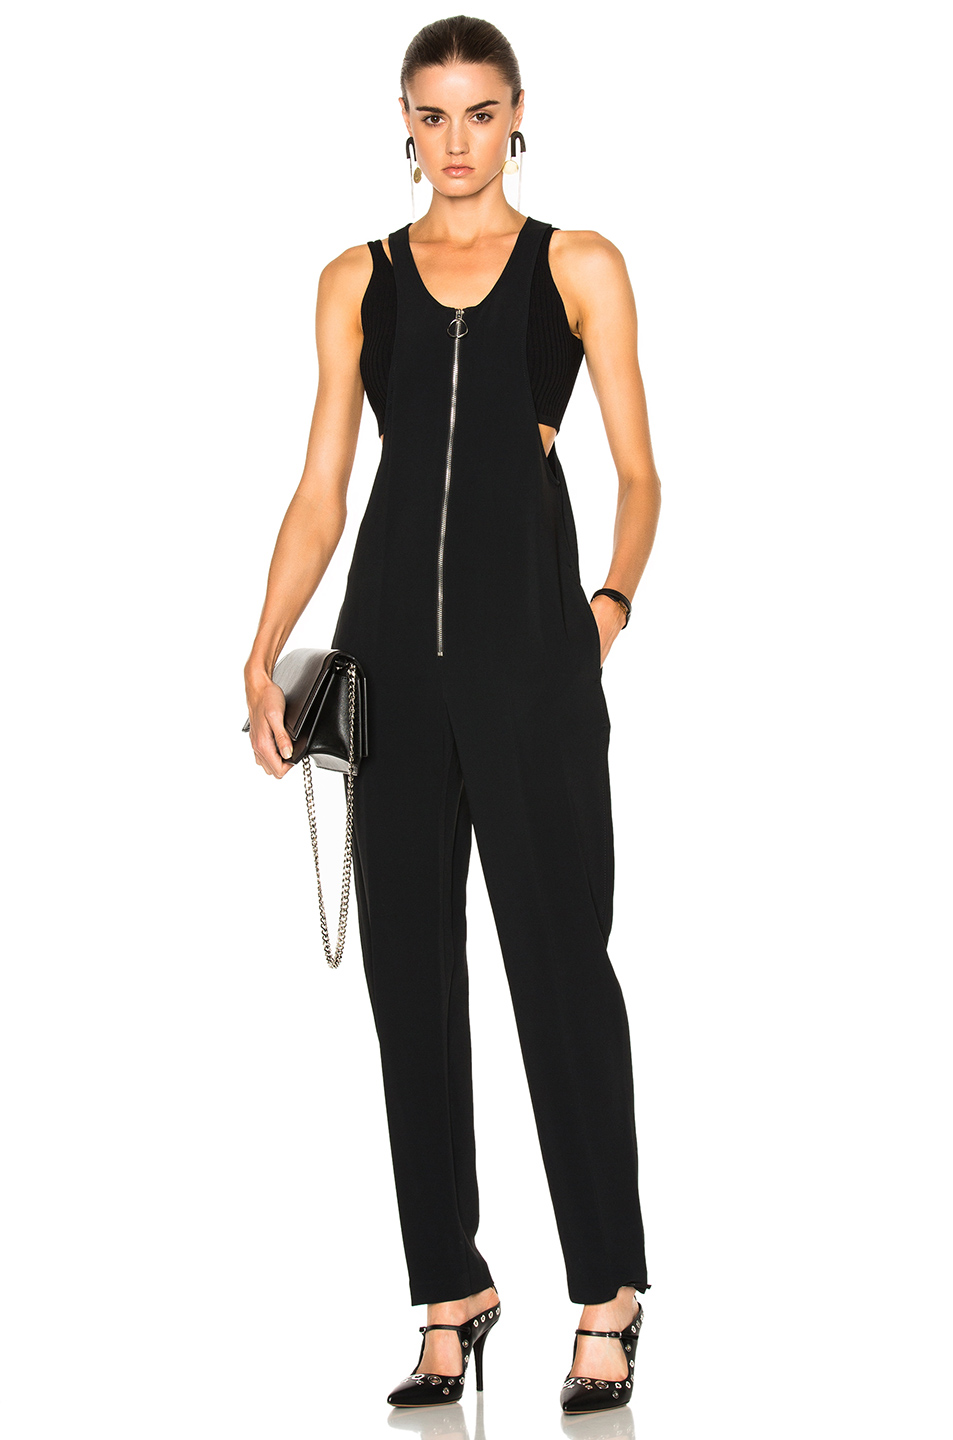 3.1 phillip lim Jumpsuit in Black